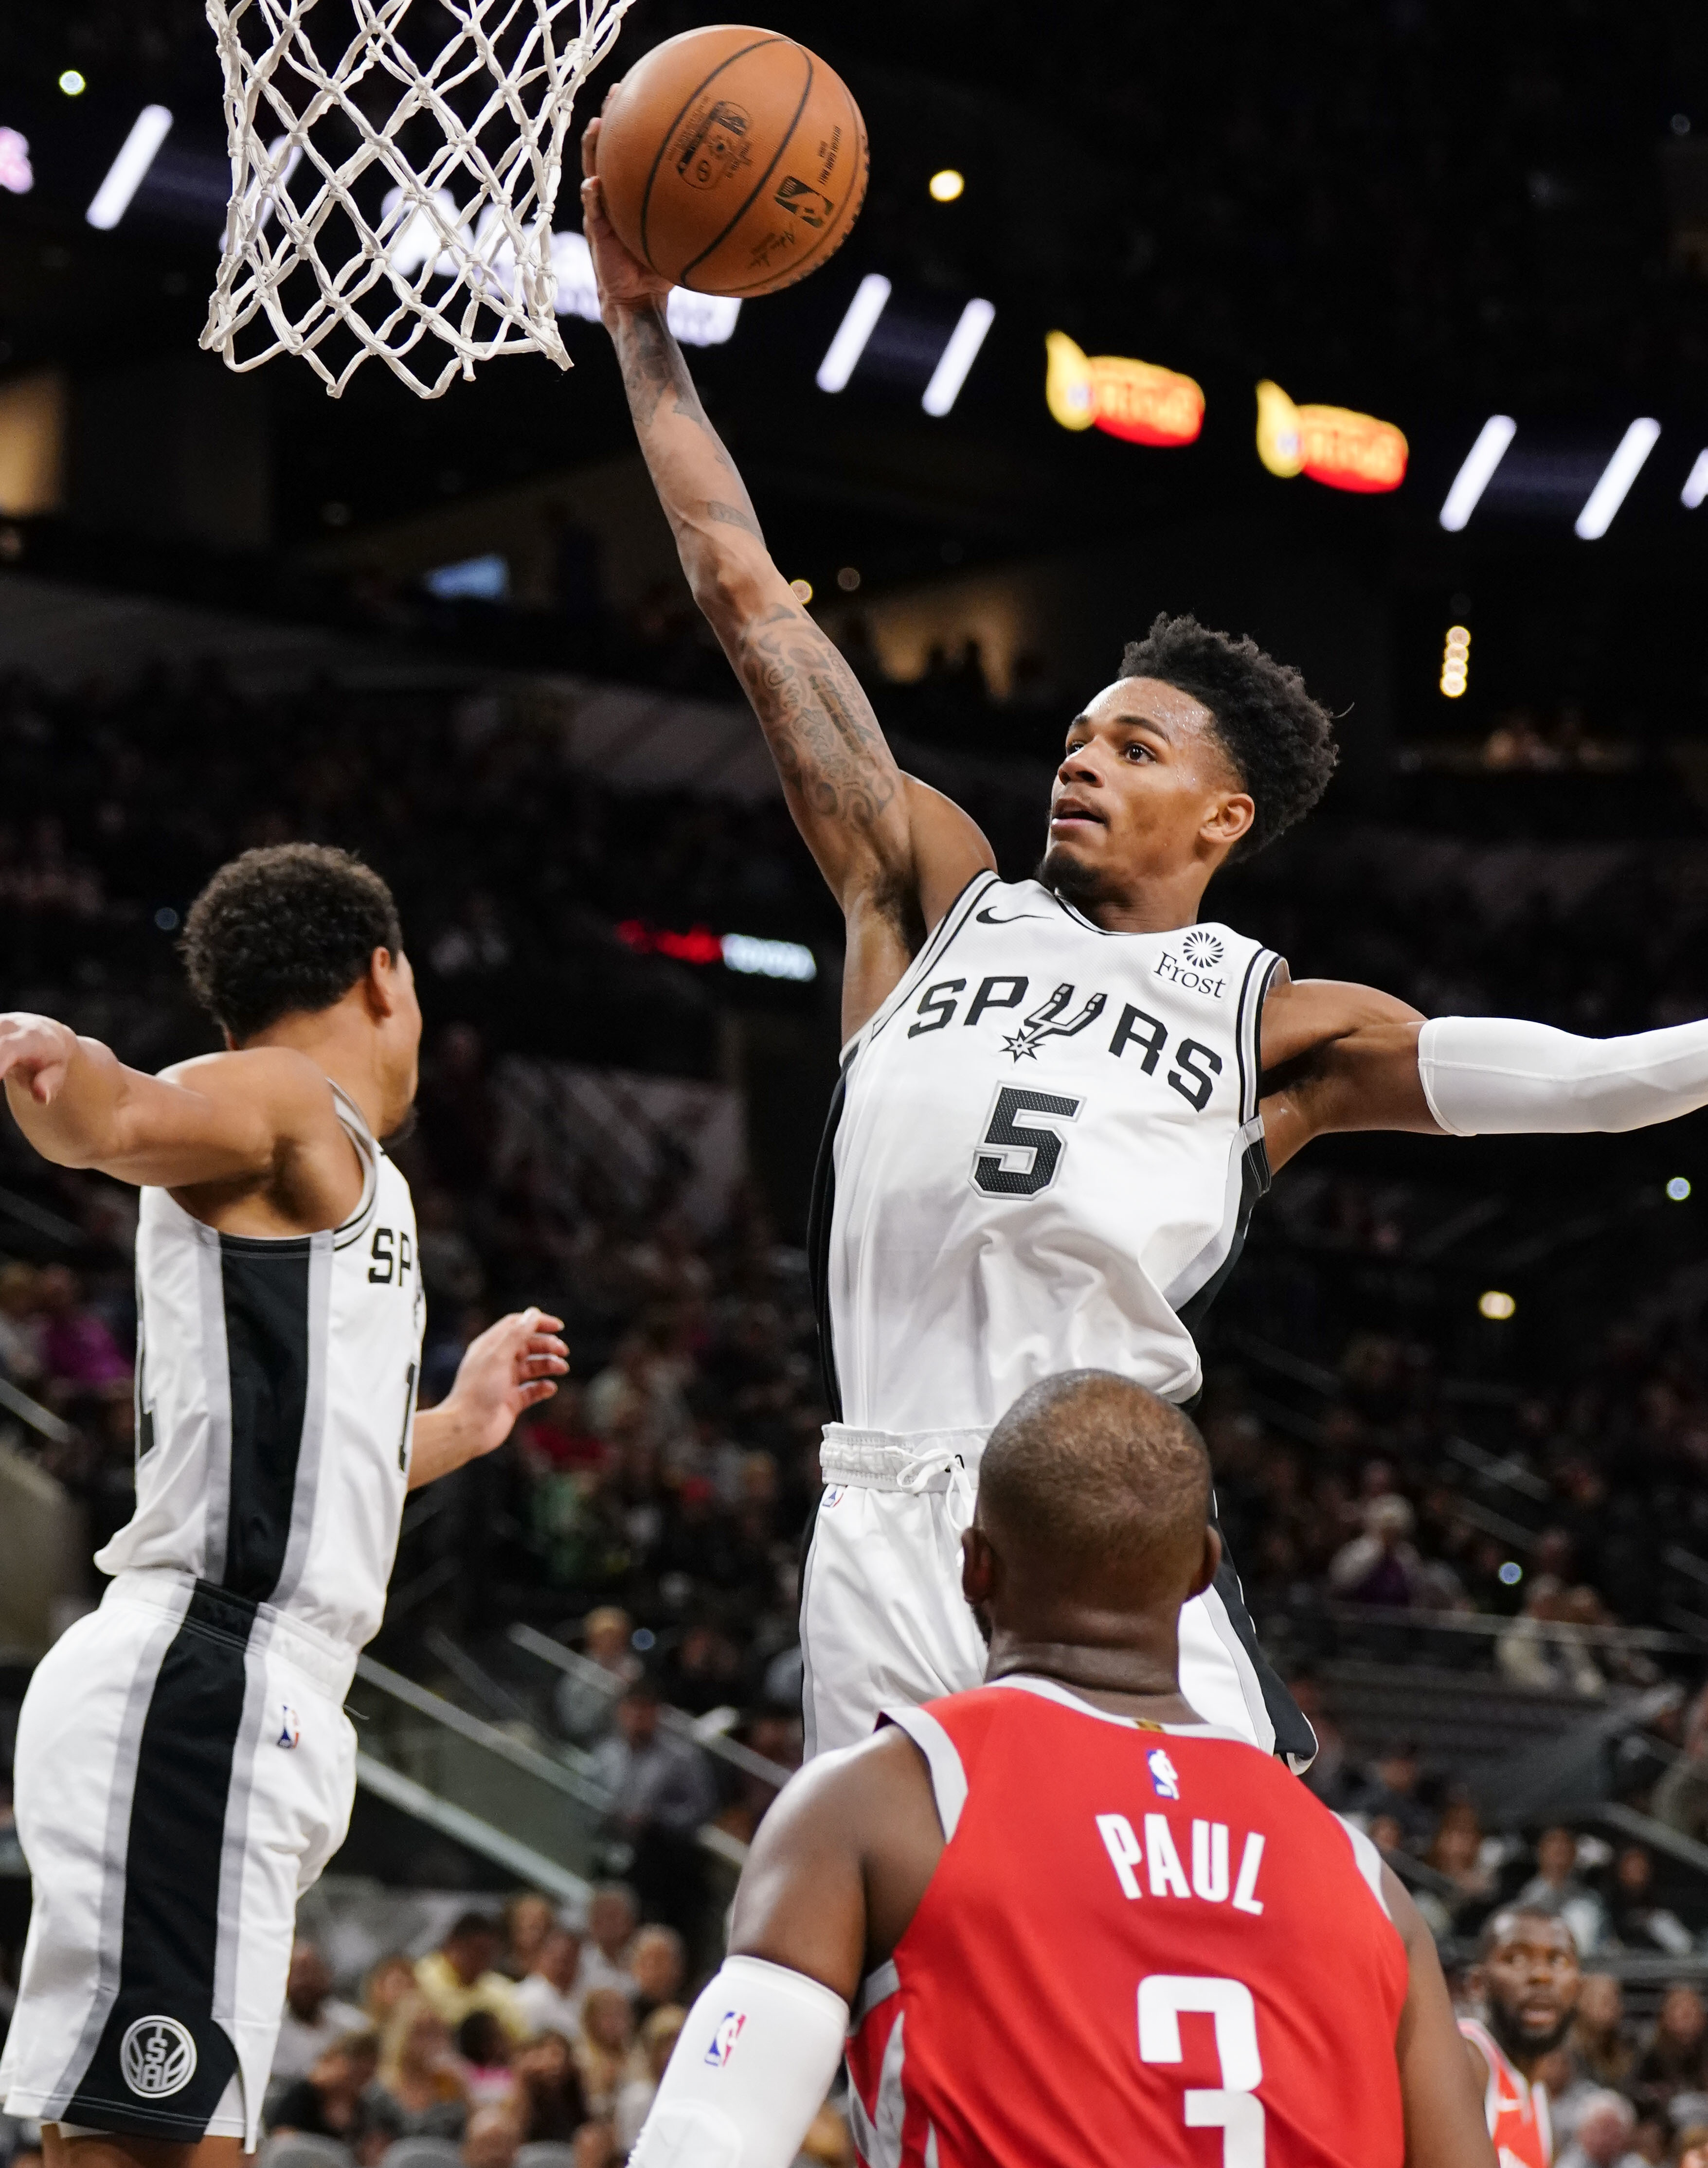 Spurs setback: lose point guard Dejounte Murray to torn ACL